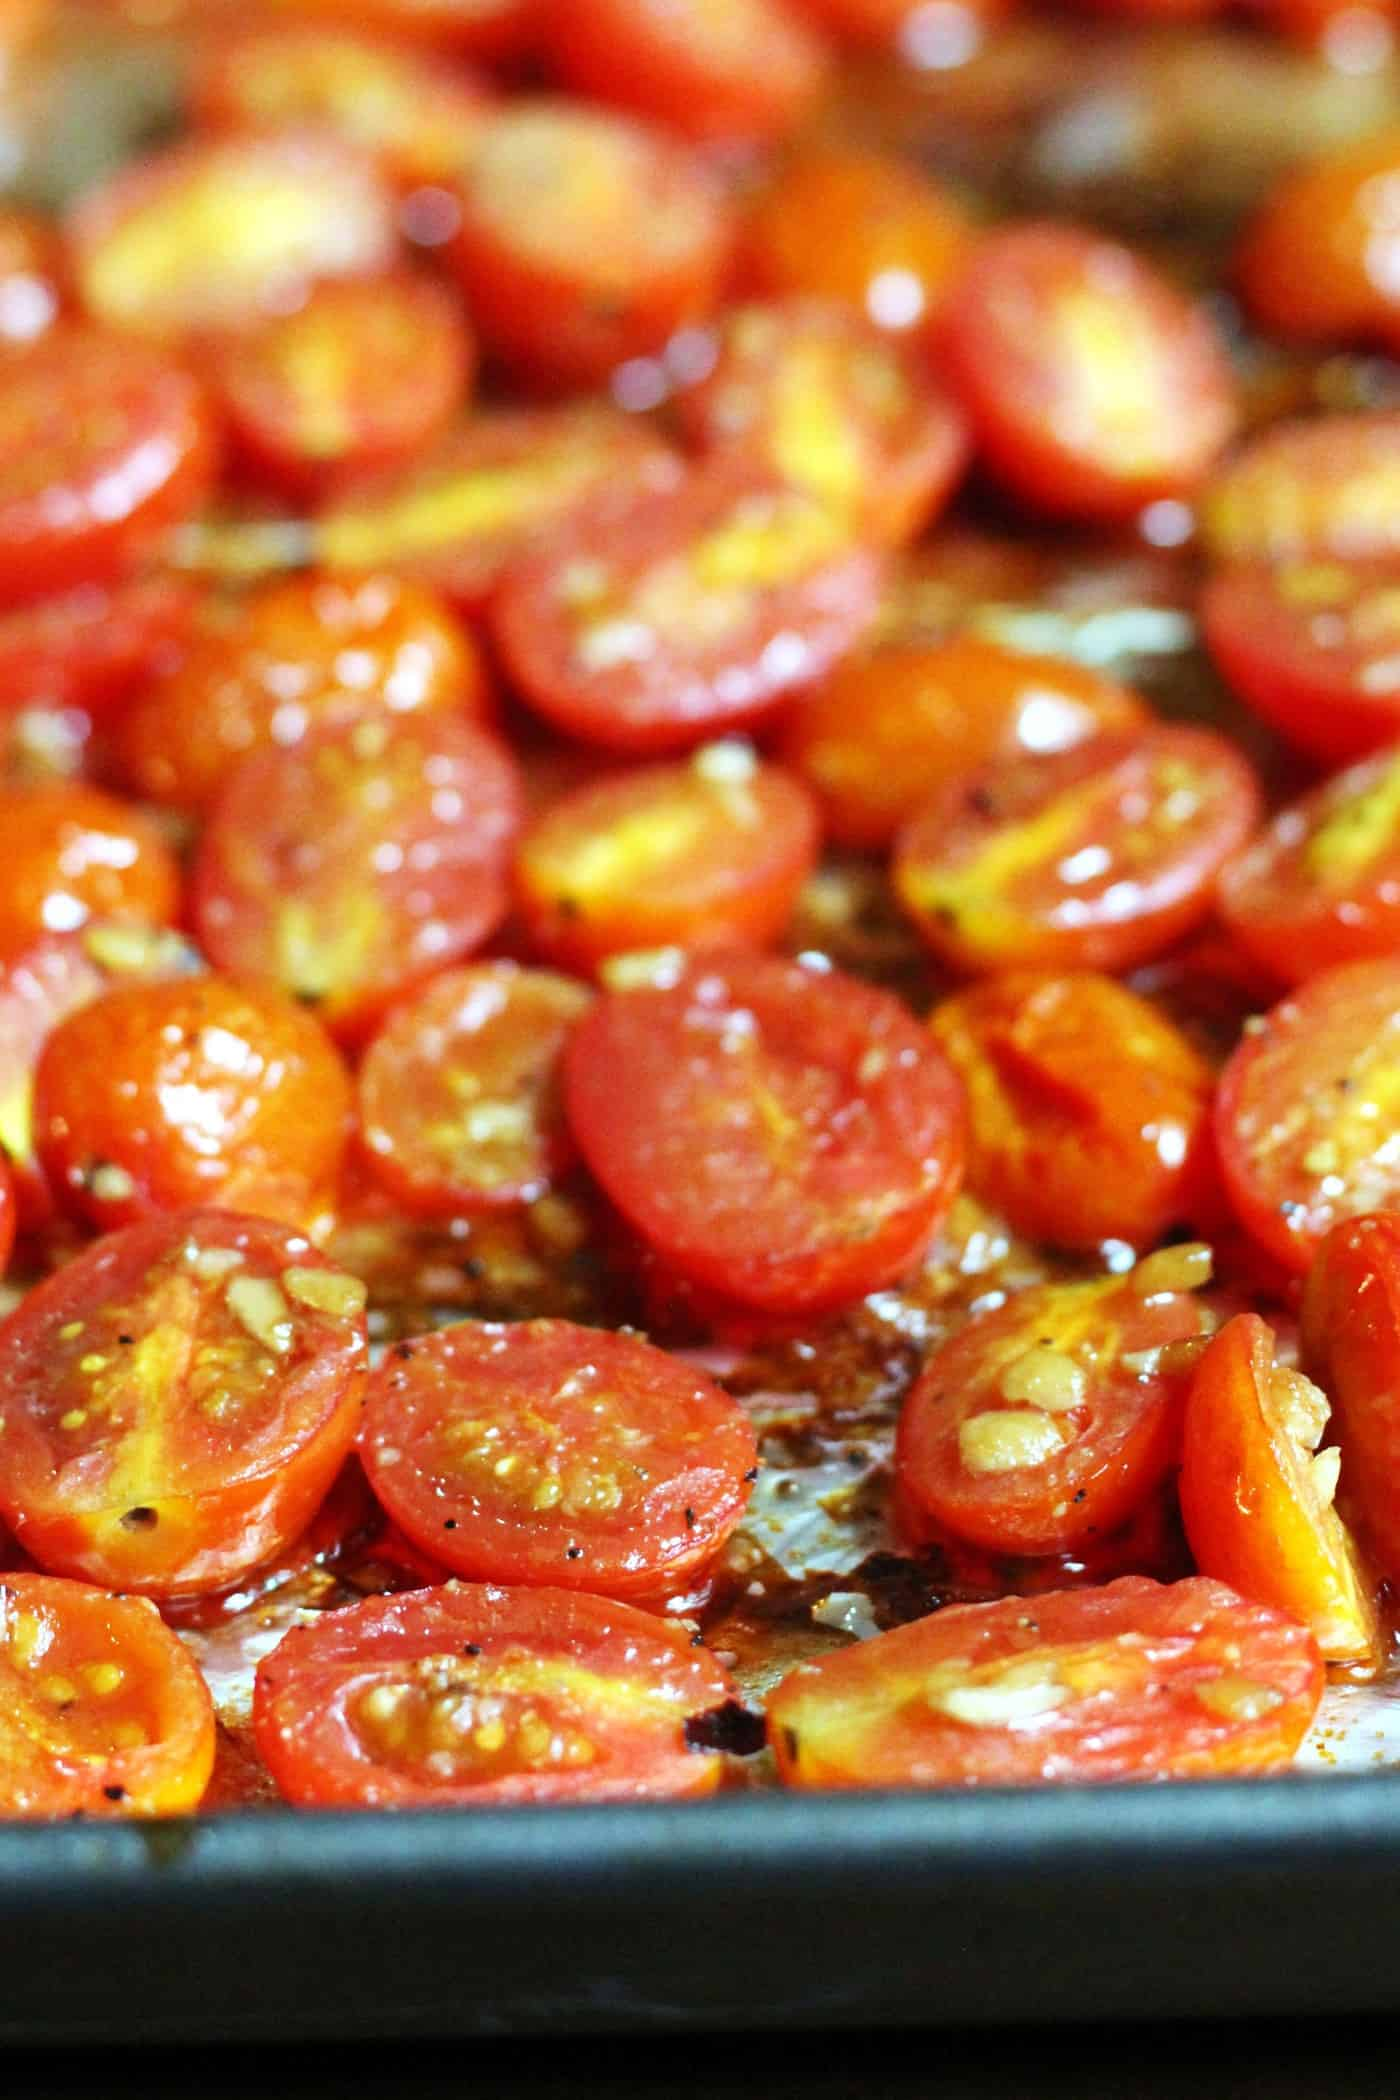 Considerable Balsamic Roasted Cherry Tomatoes Balsamic Roasted Cherry Tomatoes Healthy Toast Roasted Grape Tomatoes Ken Zucchini Roasted Grape Tomatoes nice food Roasted Grape Tomatoes